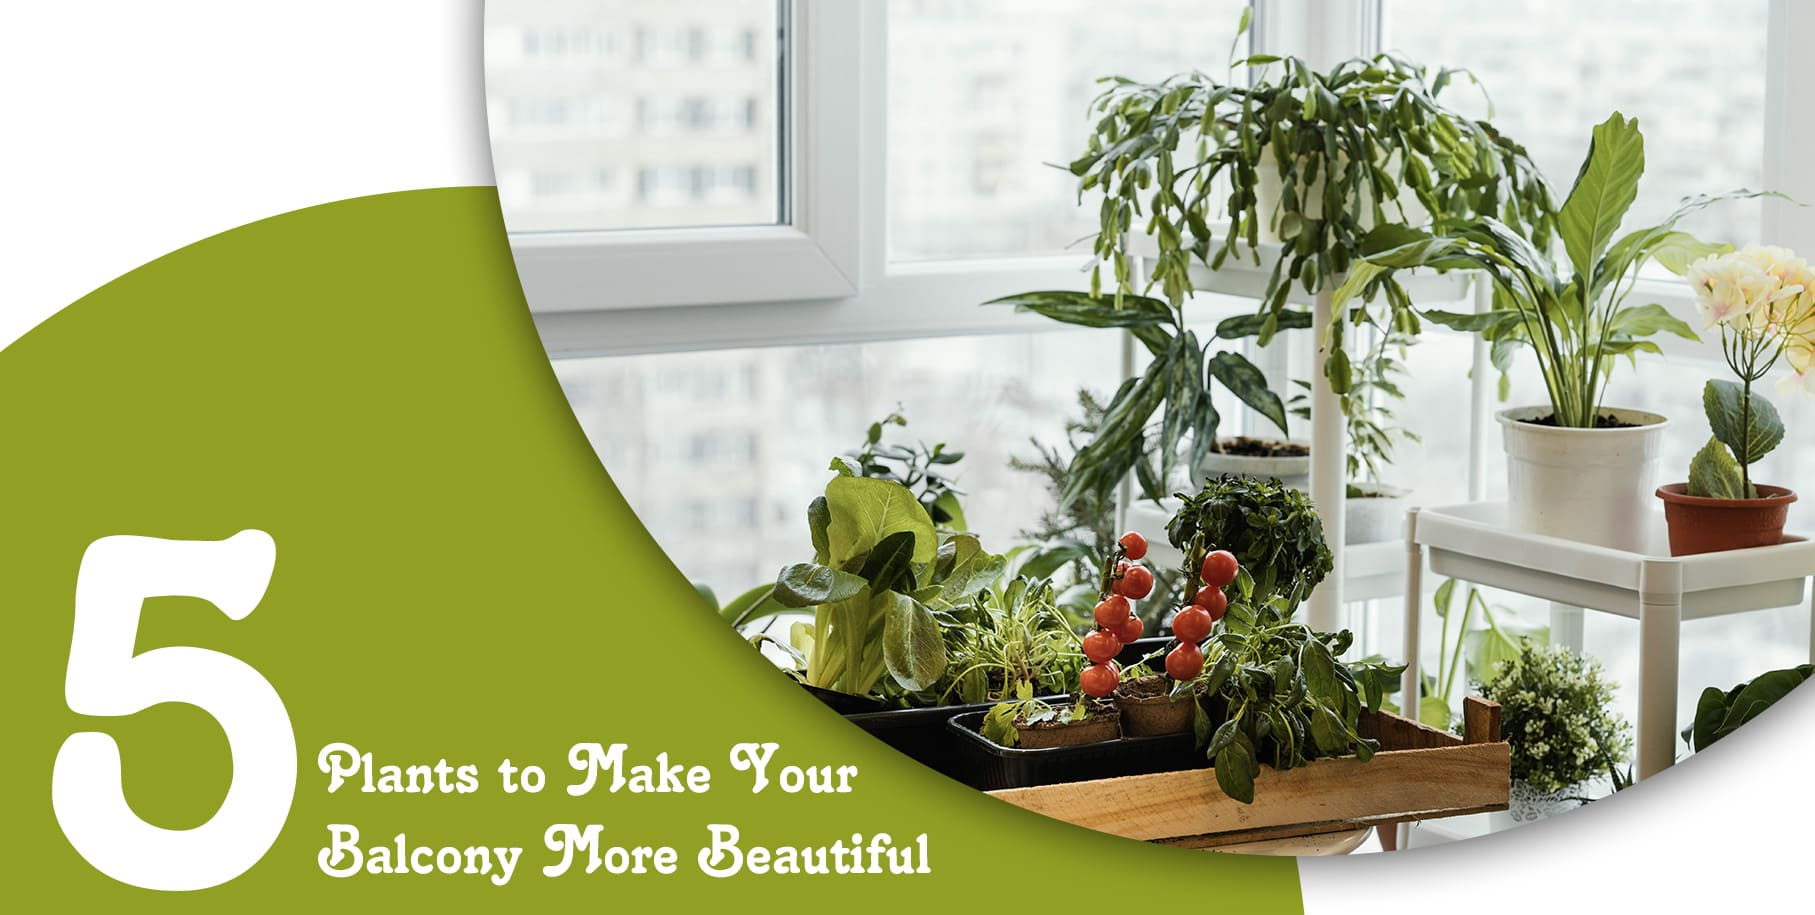 5 Plants to Make Your Balcony More Beautiful